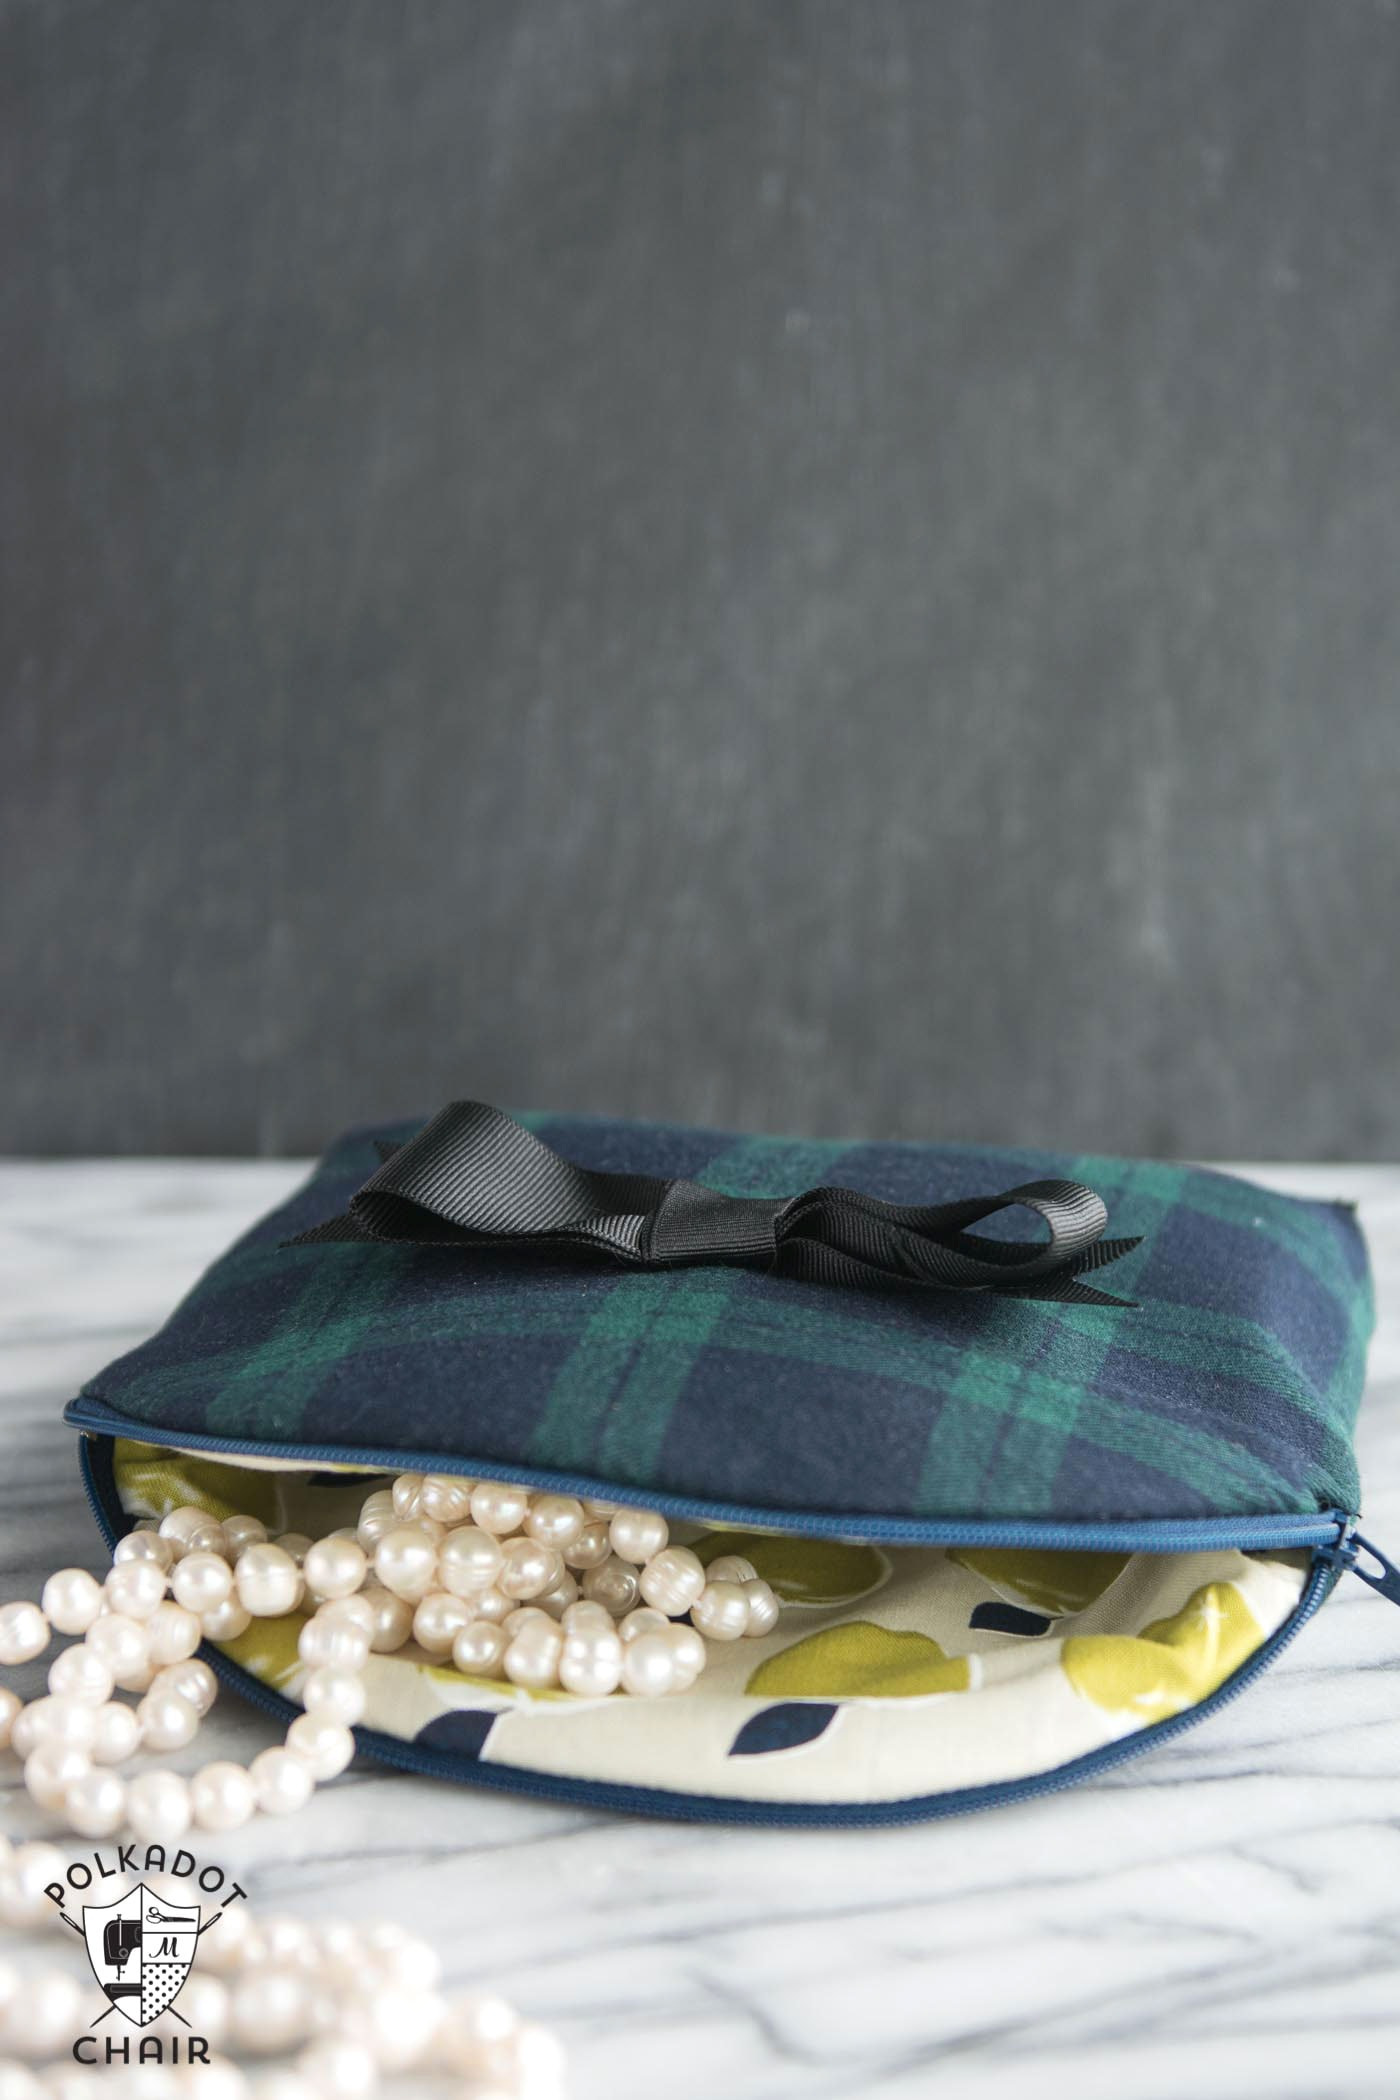 Free Sewing Pattern for a curved top cosmetic bag. Love the bow detail on the front